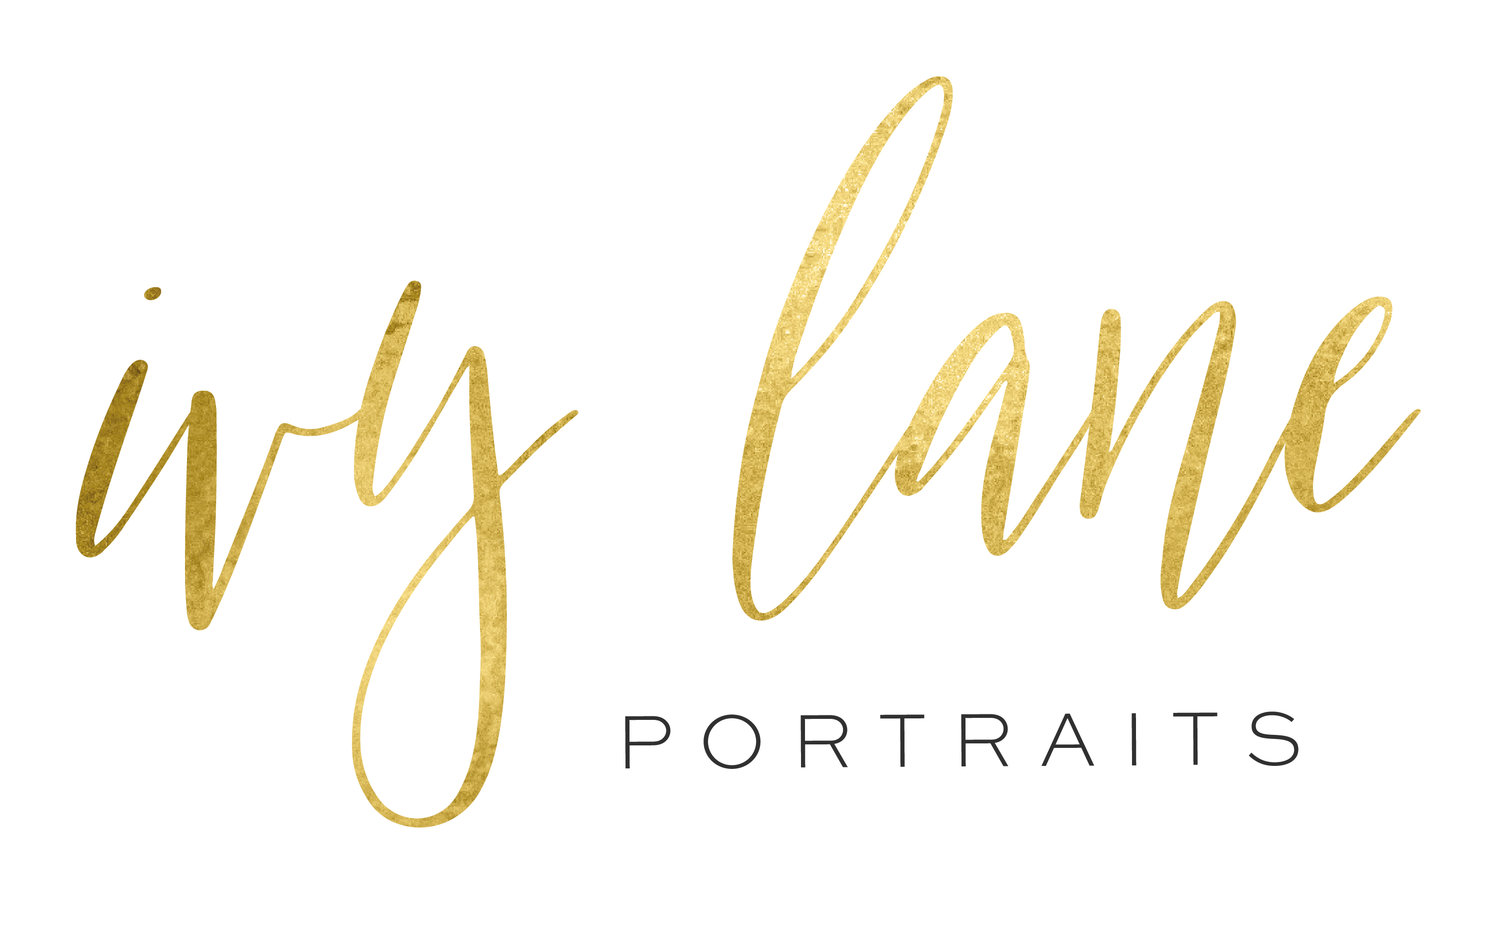 IVY LANE PORTRAITS